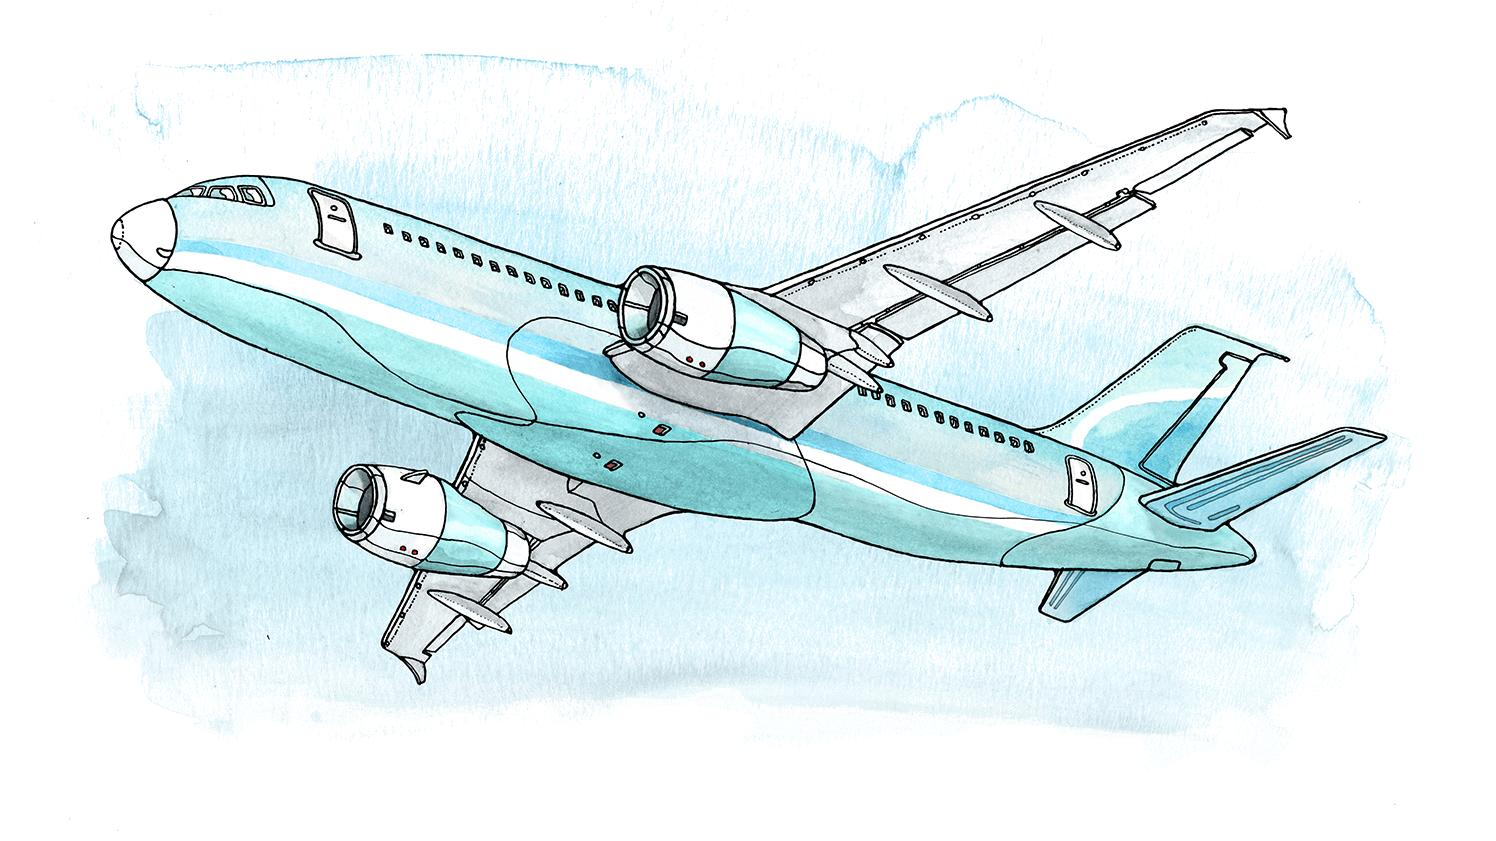 Airplane in-flight illustration